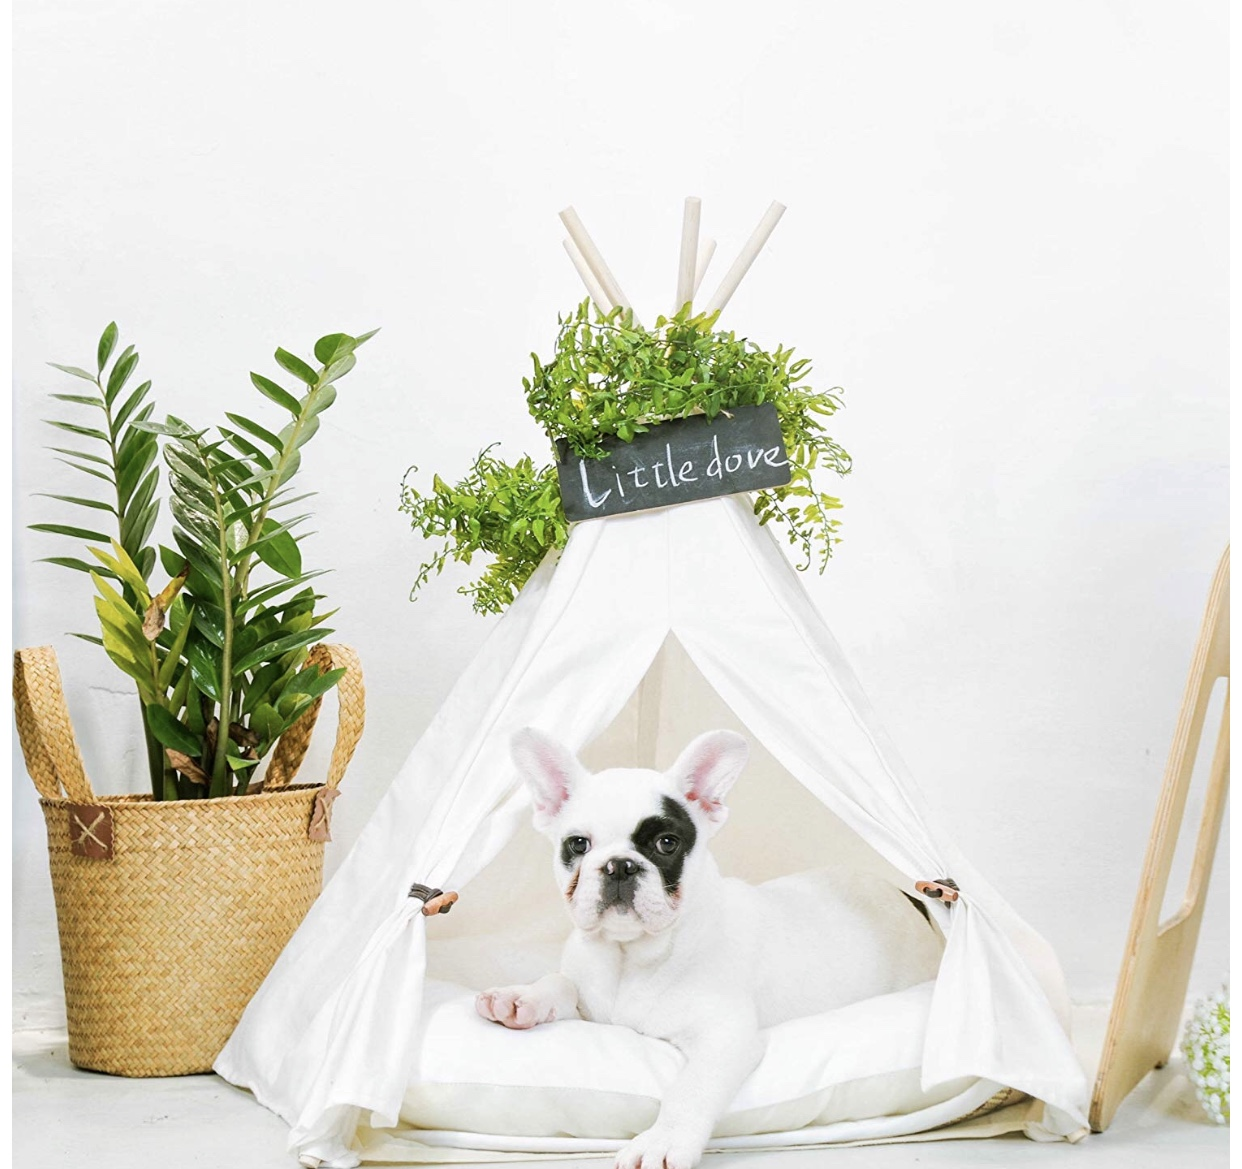 A Little Dove Pet Teepee